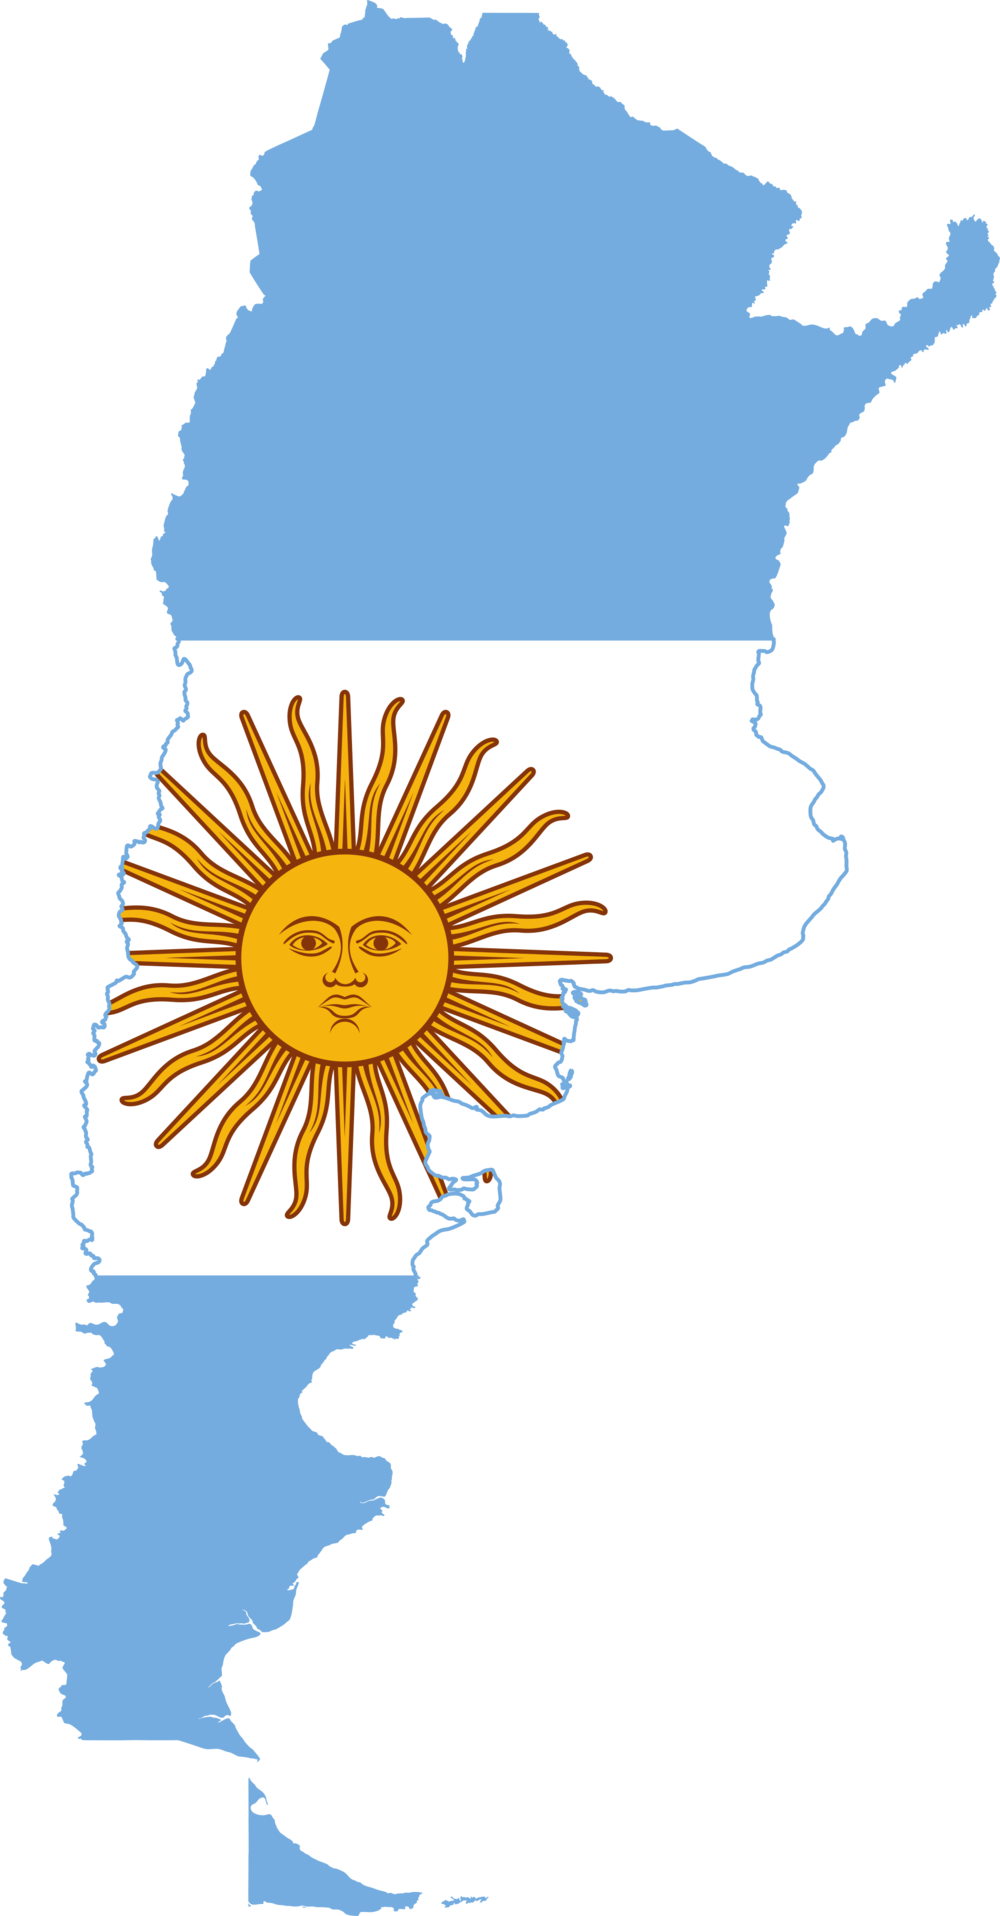 Argentina: Lucy Nevels